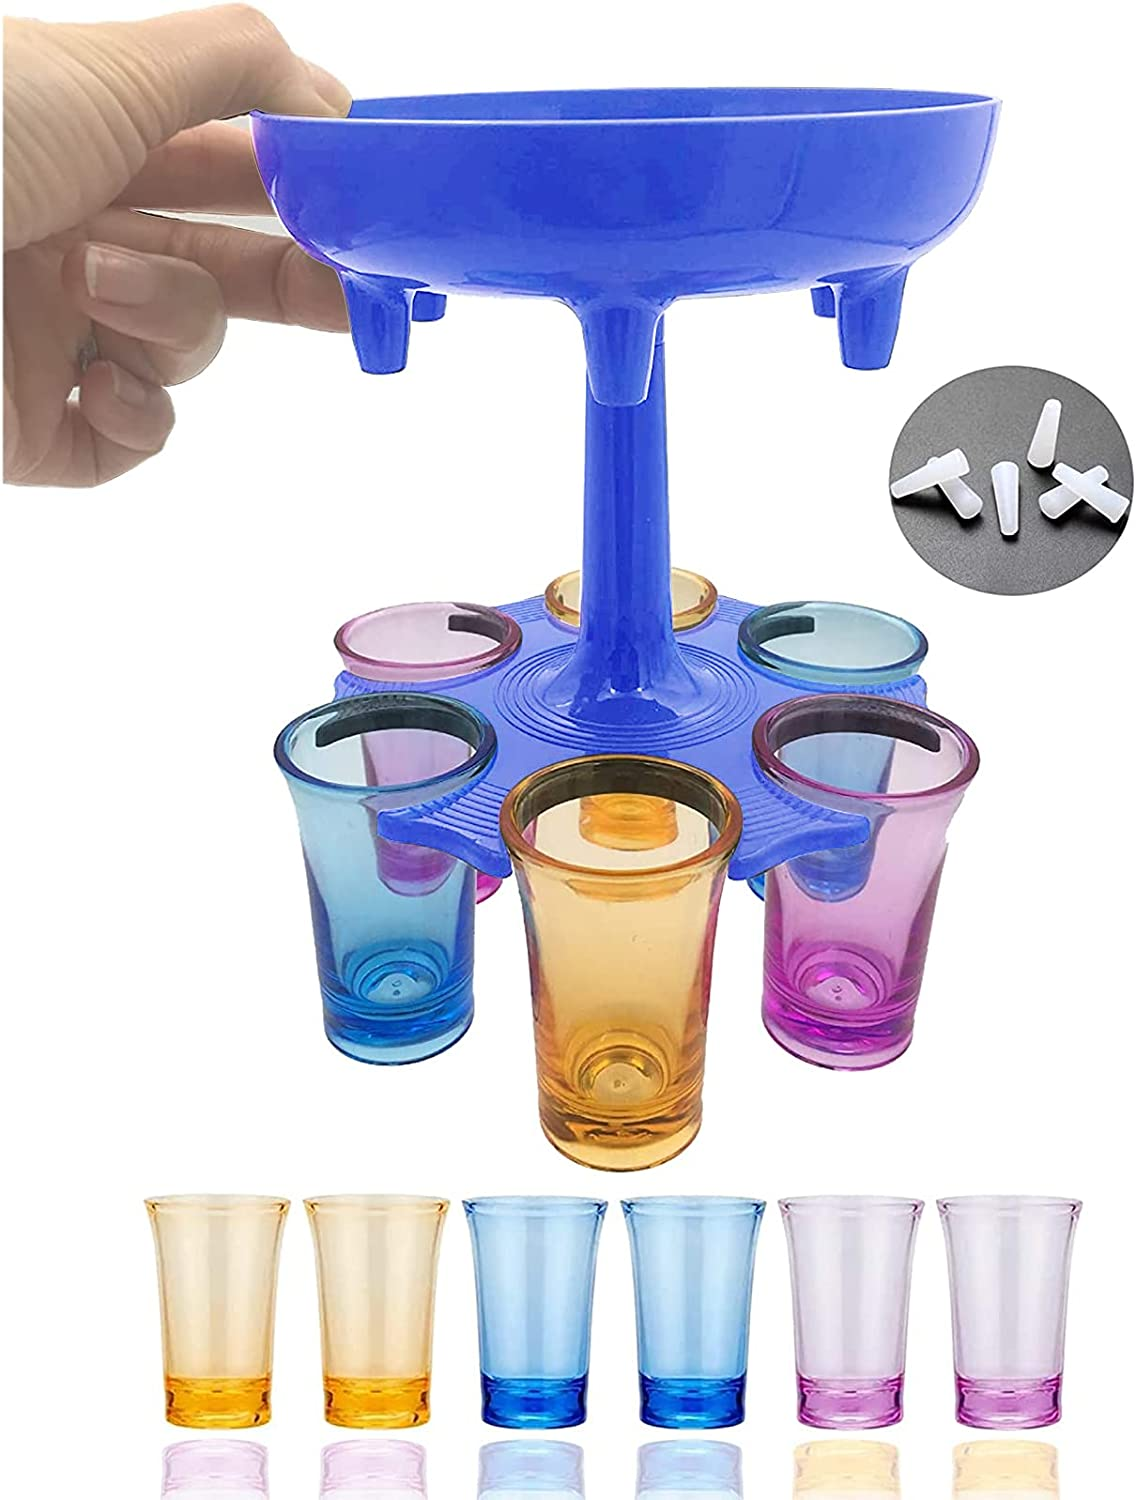 6 Shot Beverage Dispenser Stand, Shot Buddy Glass Dispenser Holder Rack, Water Drink Glass Dispenser Filling Alcohol Liquor Beverage Cocktail, Perfect for Party Carnival(Blue)